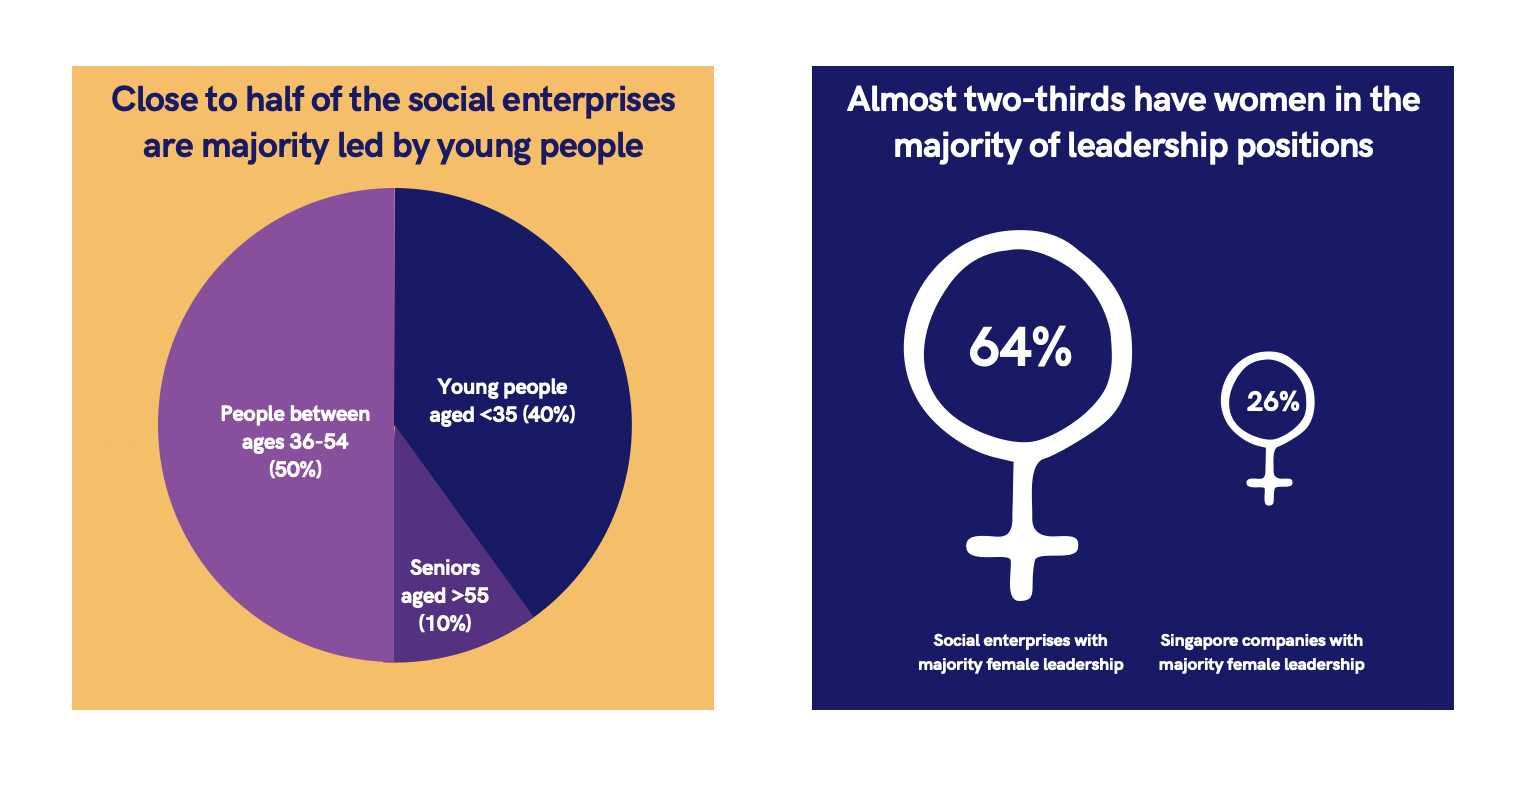 women and young people lead Singapore's social enterprises